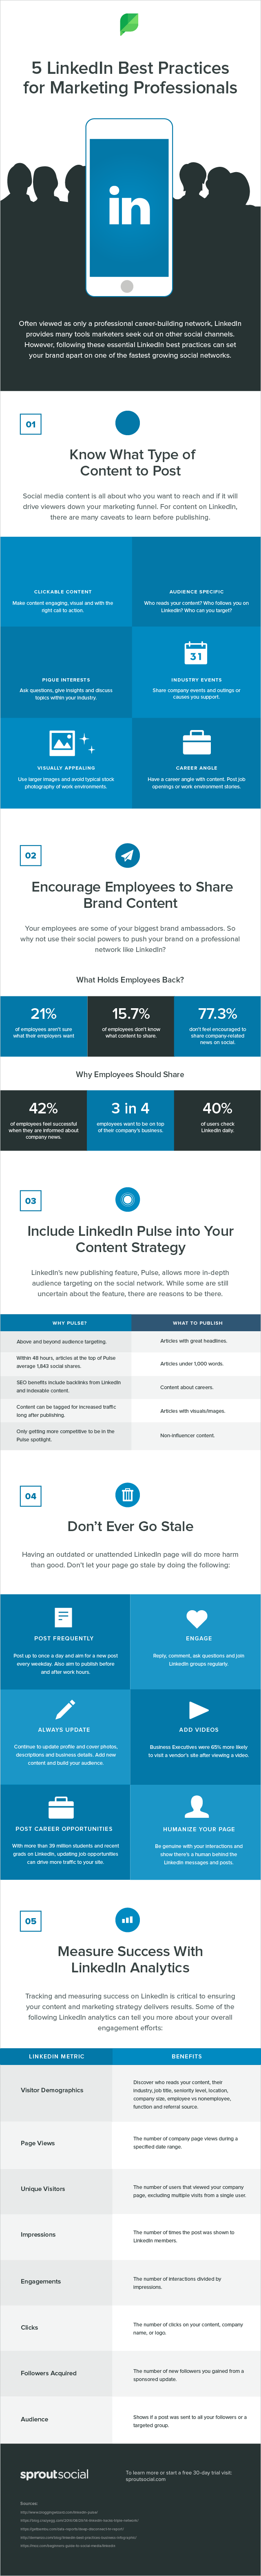 5 LinkedIn Best Practices for Marketing Professionals - infographic